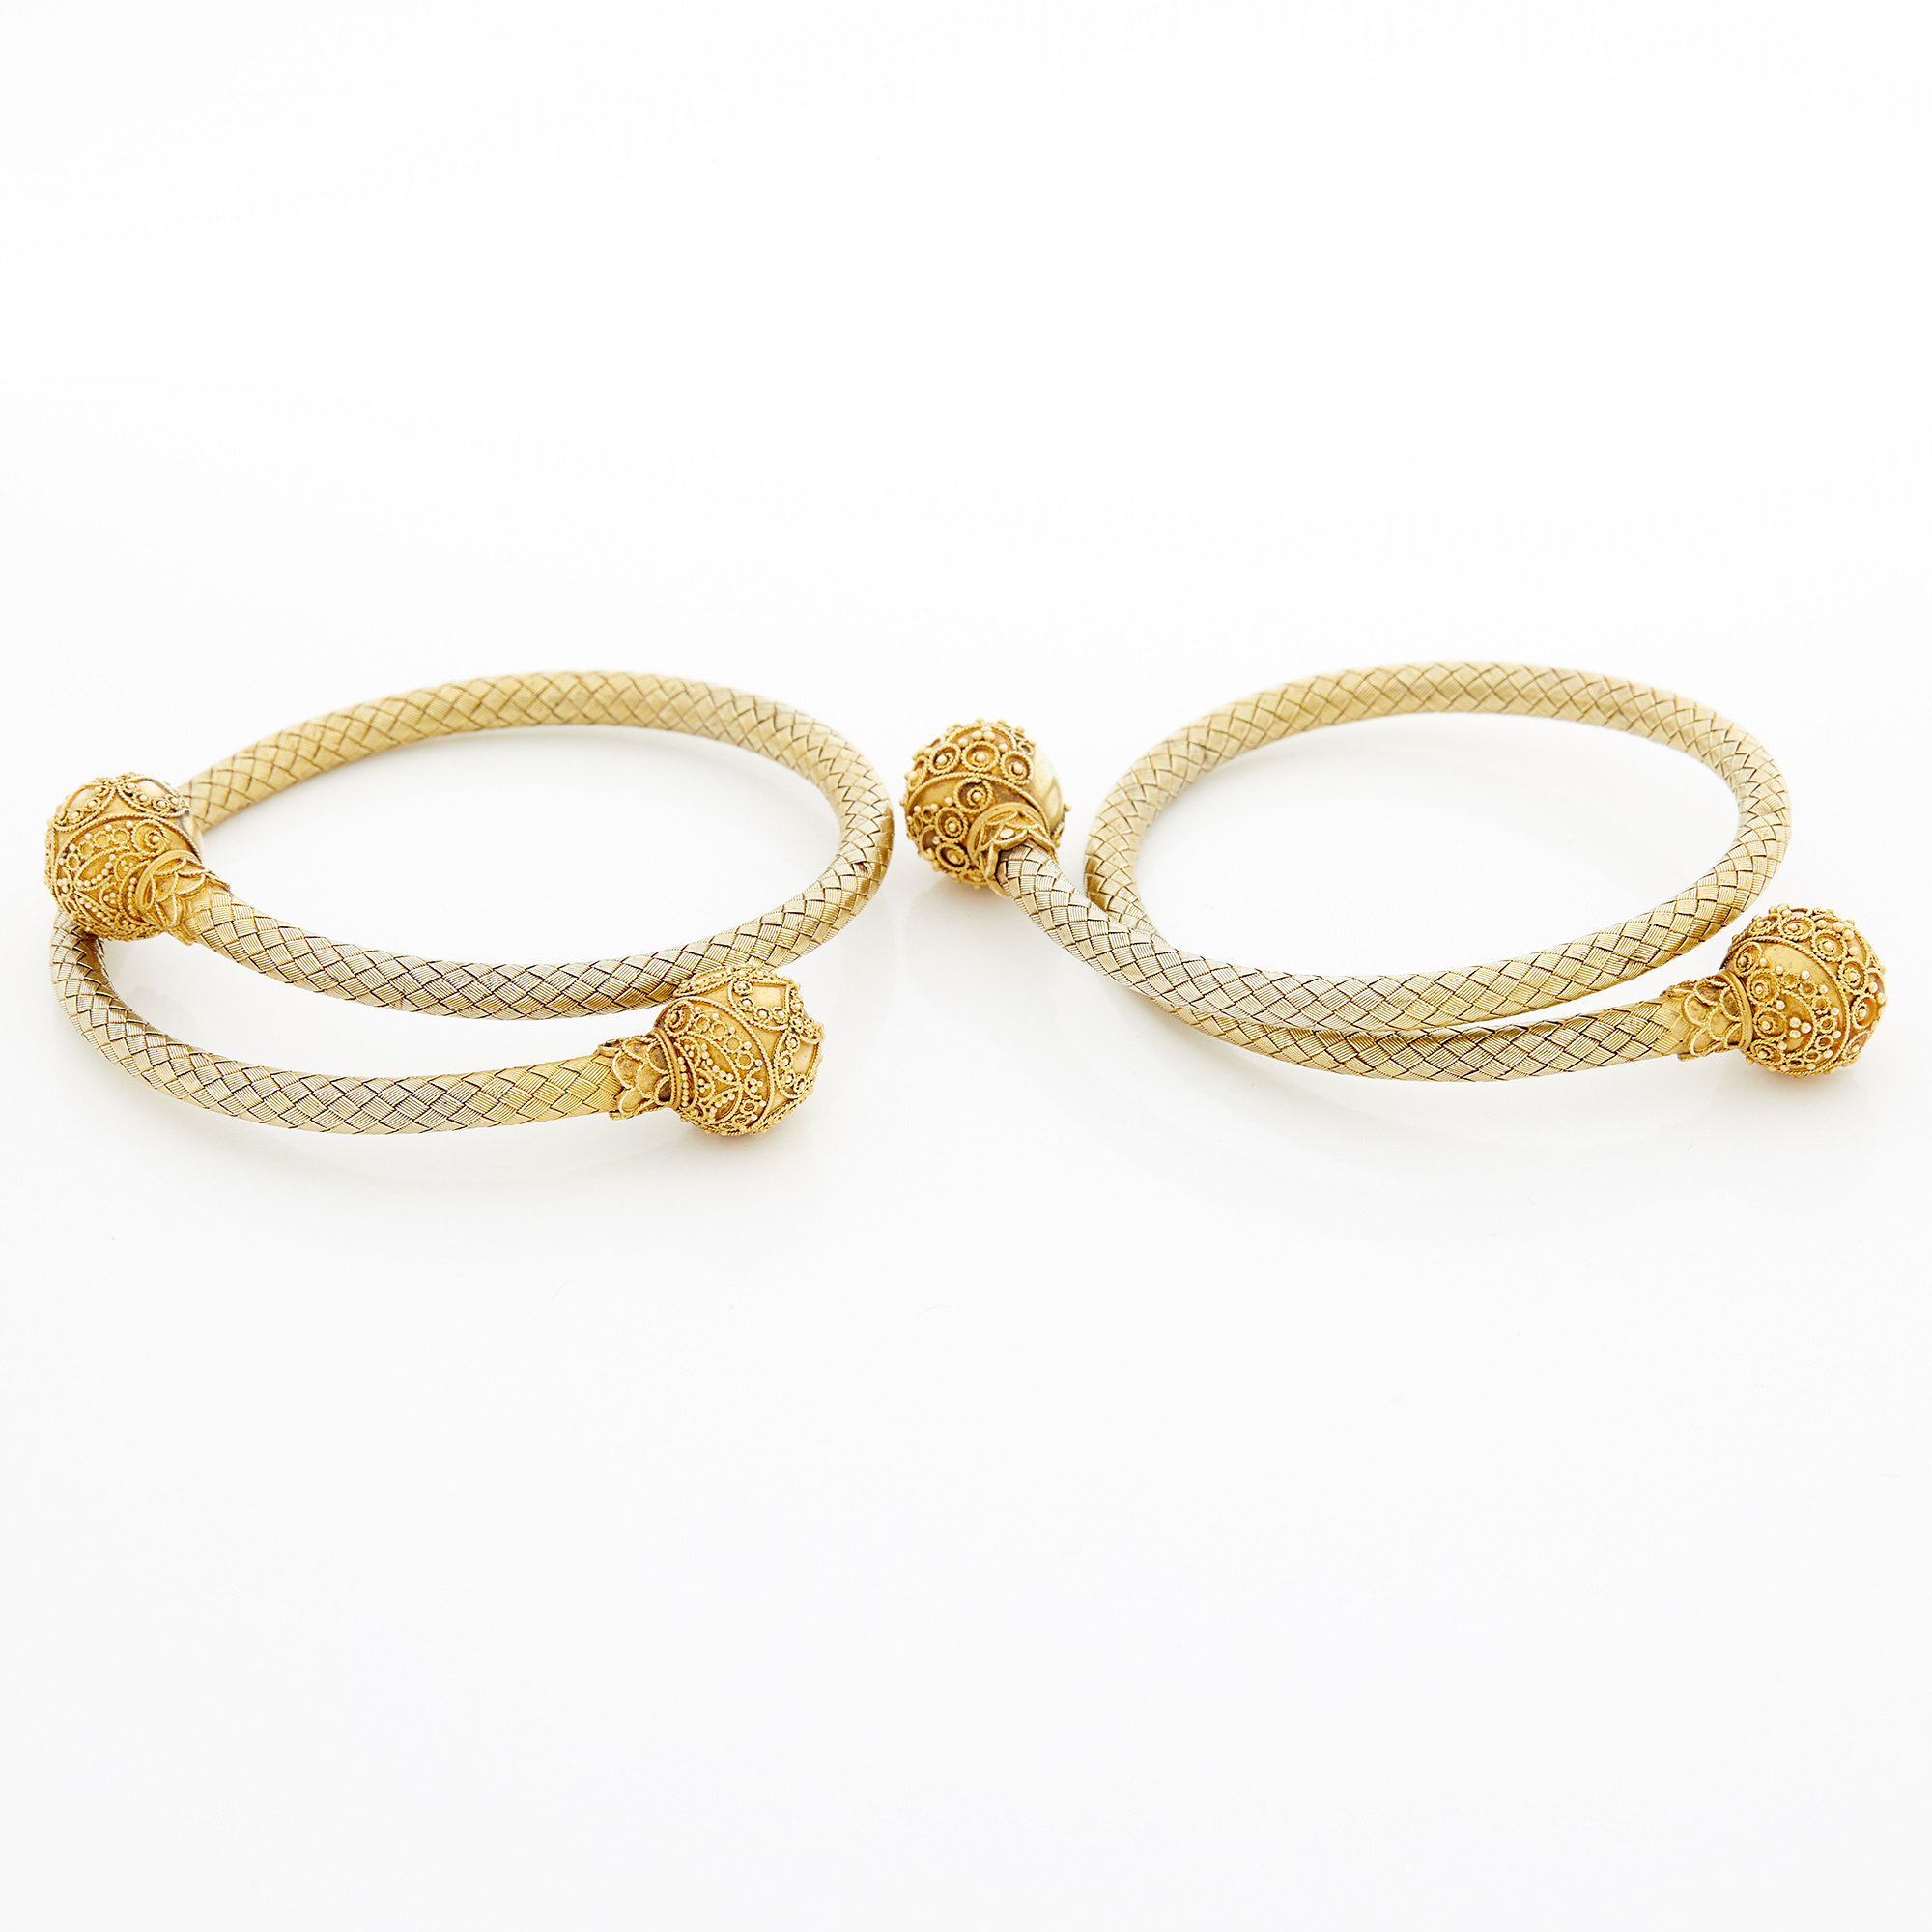 Lot image - Two Antique Gold and Low Karat Gold Bracelets